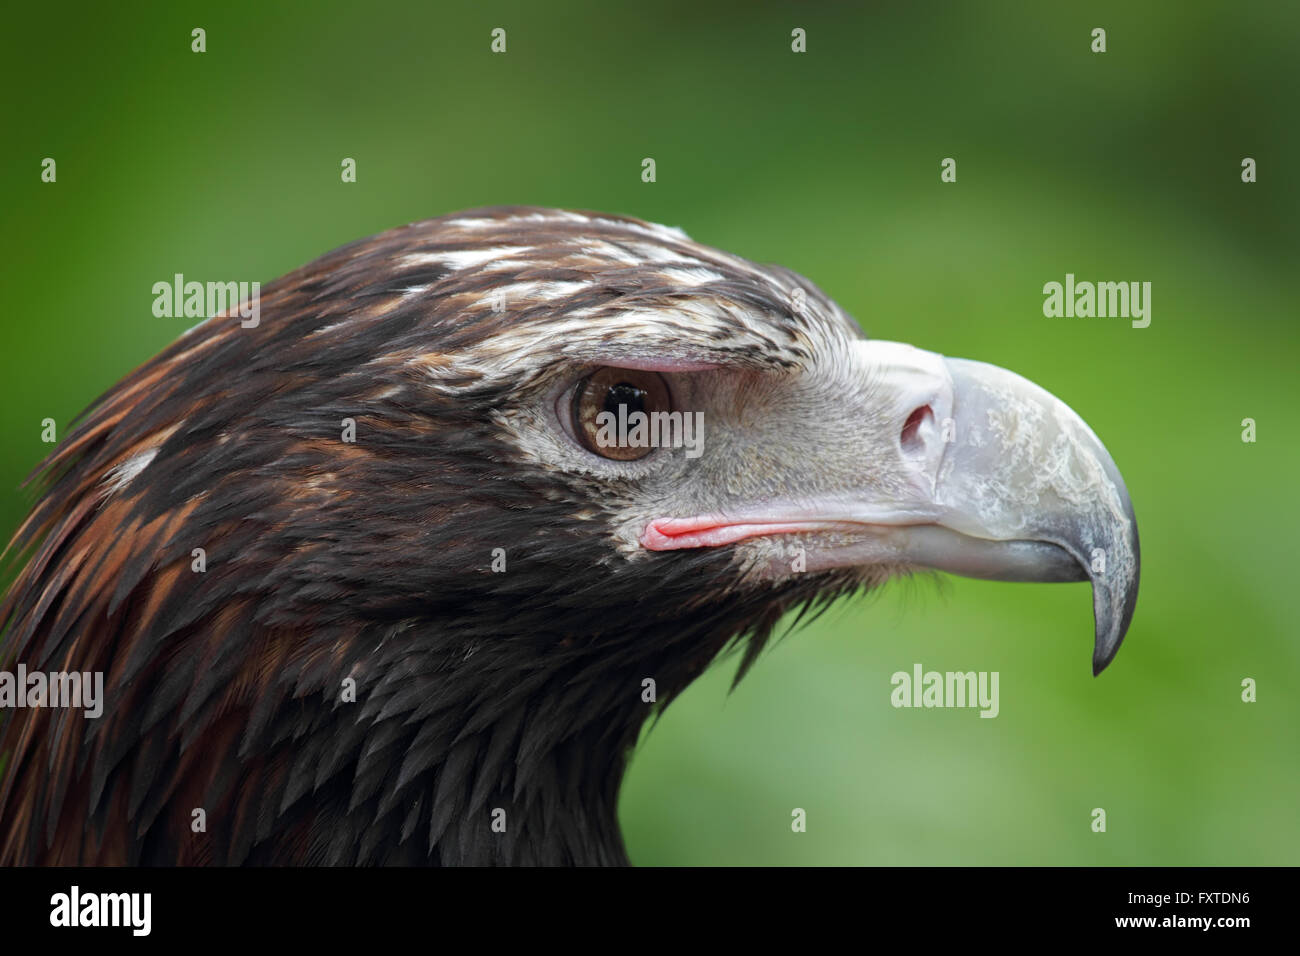 Close up of a Wedge-tailed Eagle (Aquila audax) in Queensland, Australia. - Stock Image